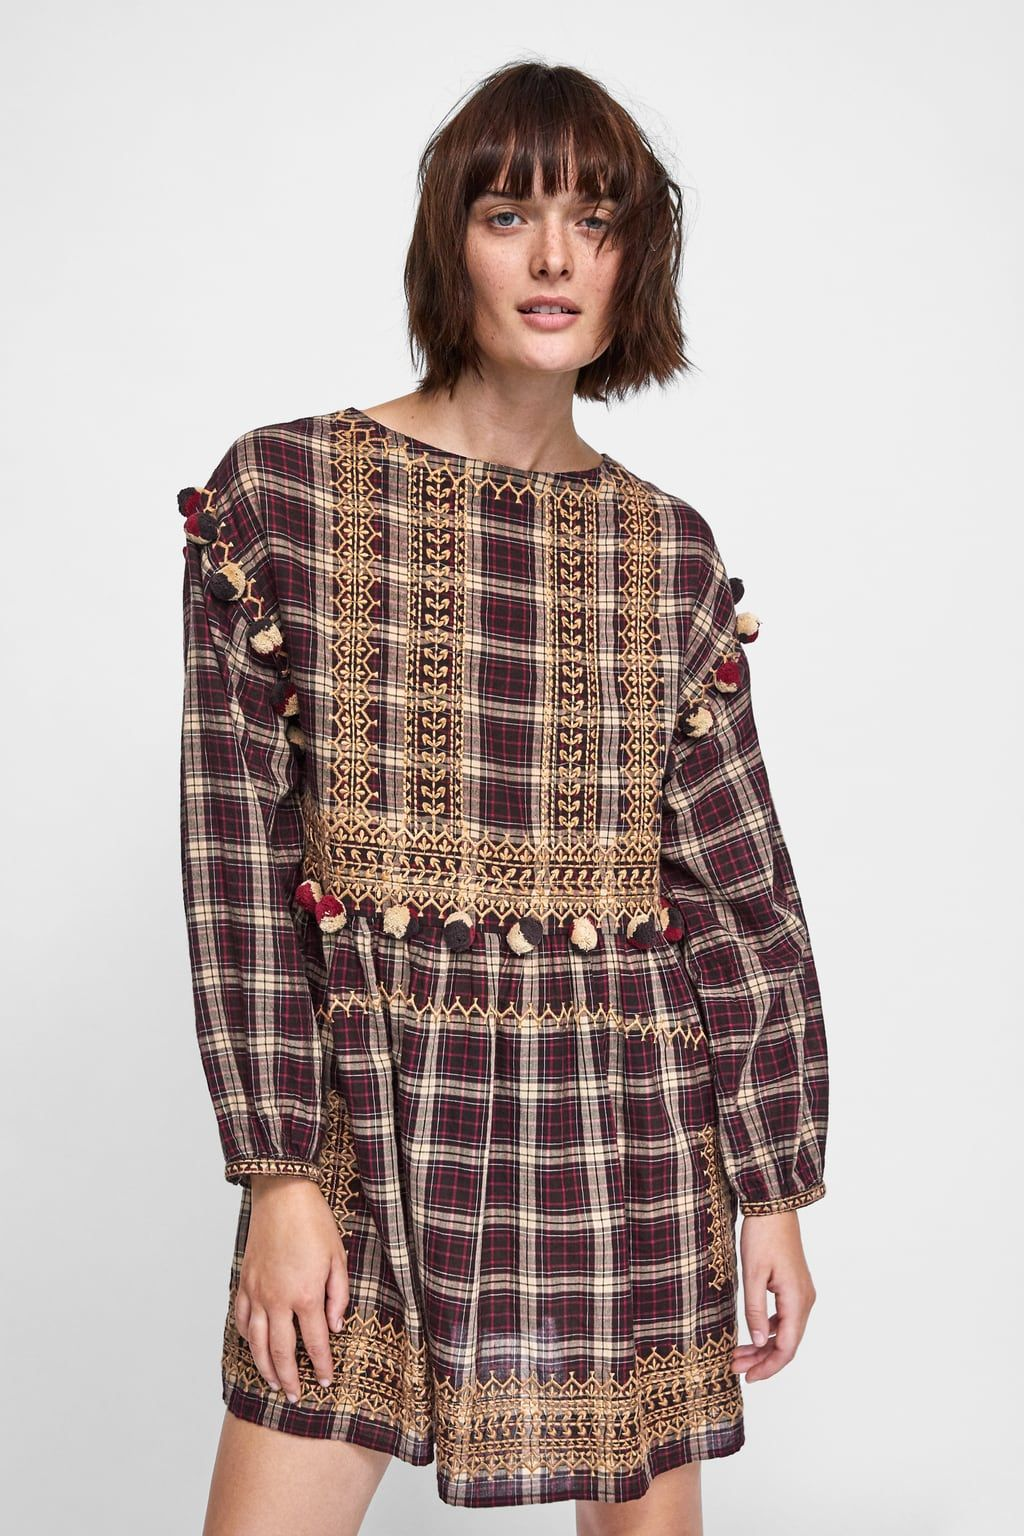 3057c0971497 Image 2 of PLAID DRESS WITH POMPOMS from Zara | Stuff I want Rn ...